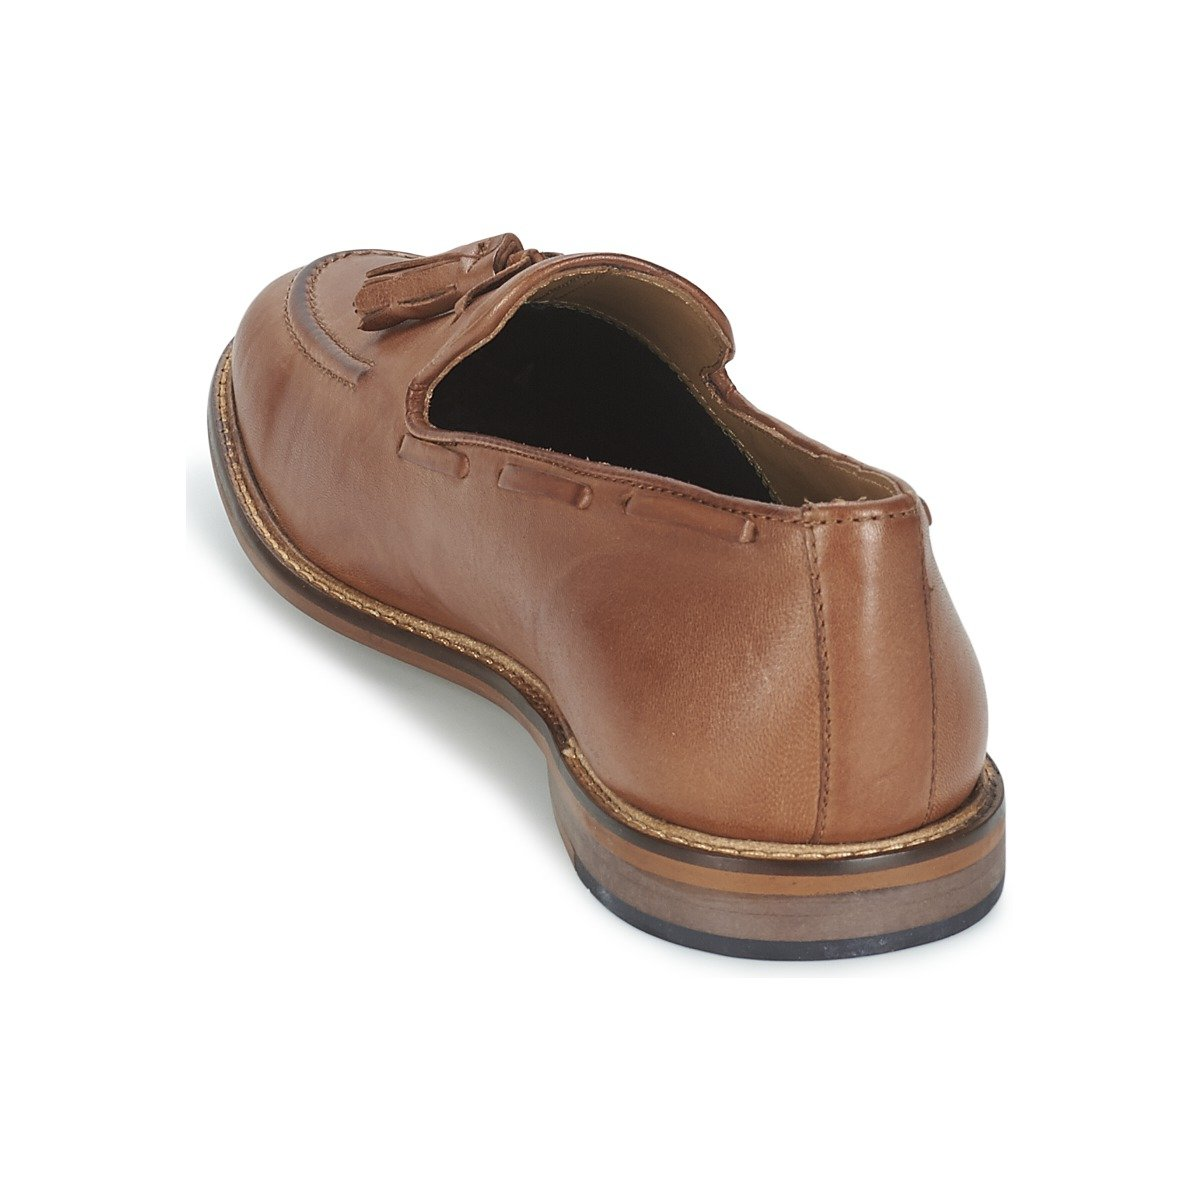 a1f3f2130ca Ben Sherman Mens ALFR City Loafer Cognac Loafers 12  Amazon.co.uk  Shoes    Bags